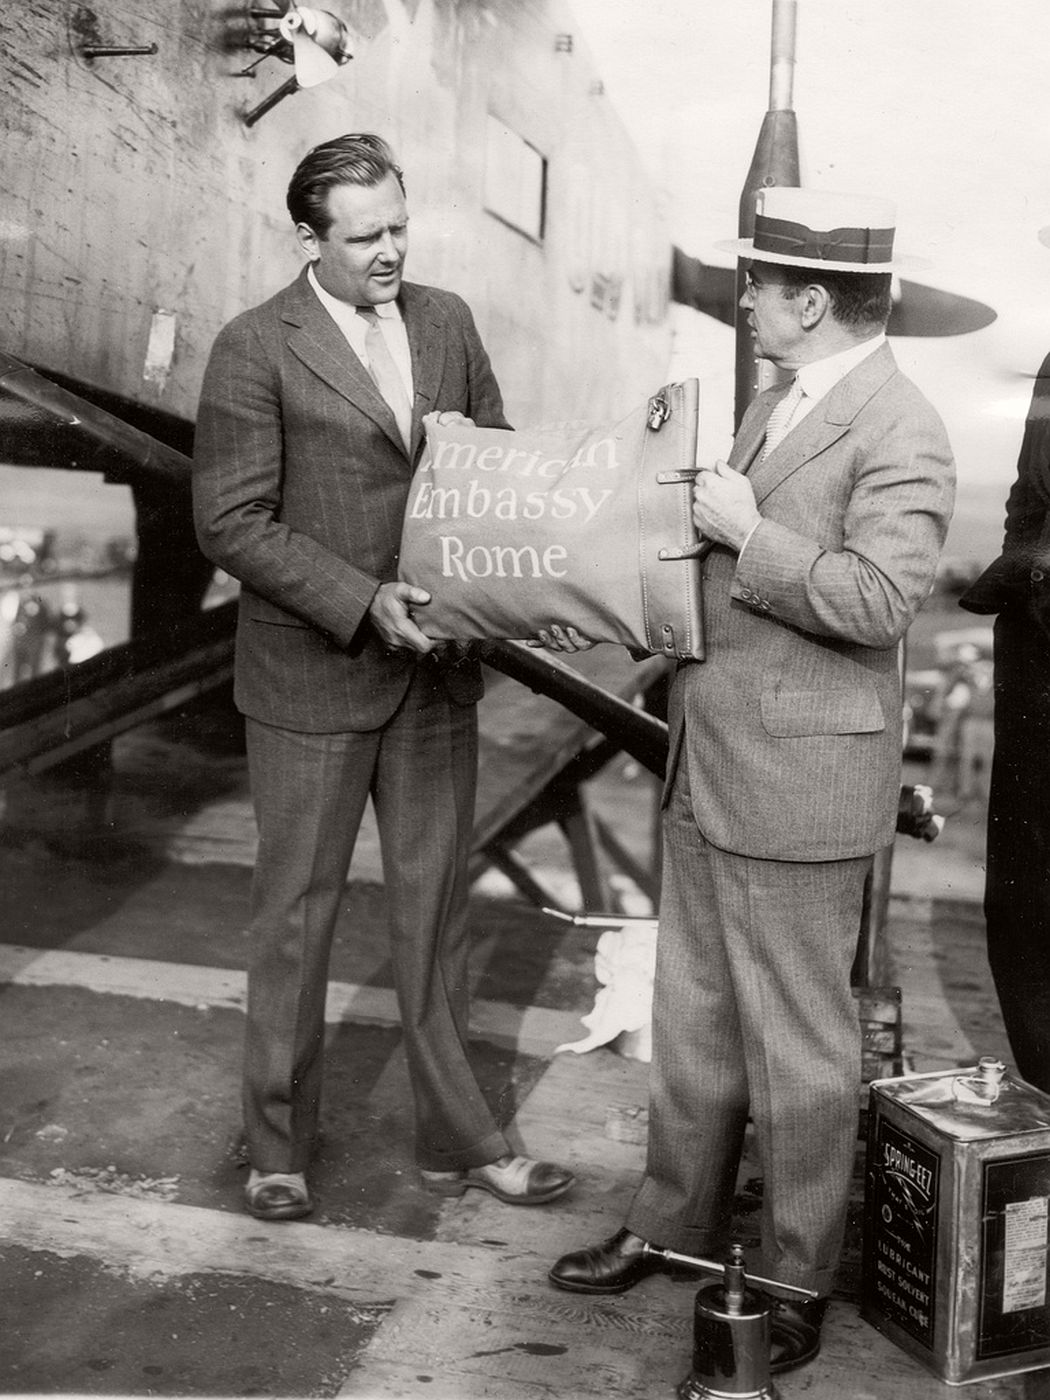 Airmail pilot Lloyd Bertaud and an unidentified individual, September 6, 1927